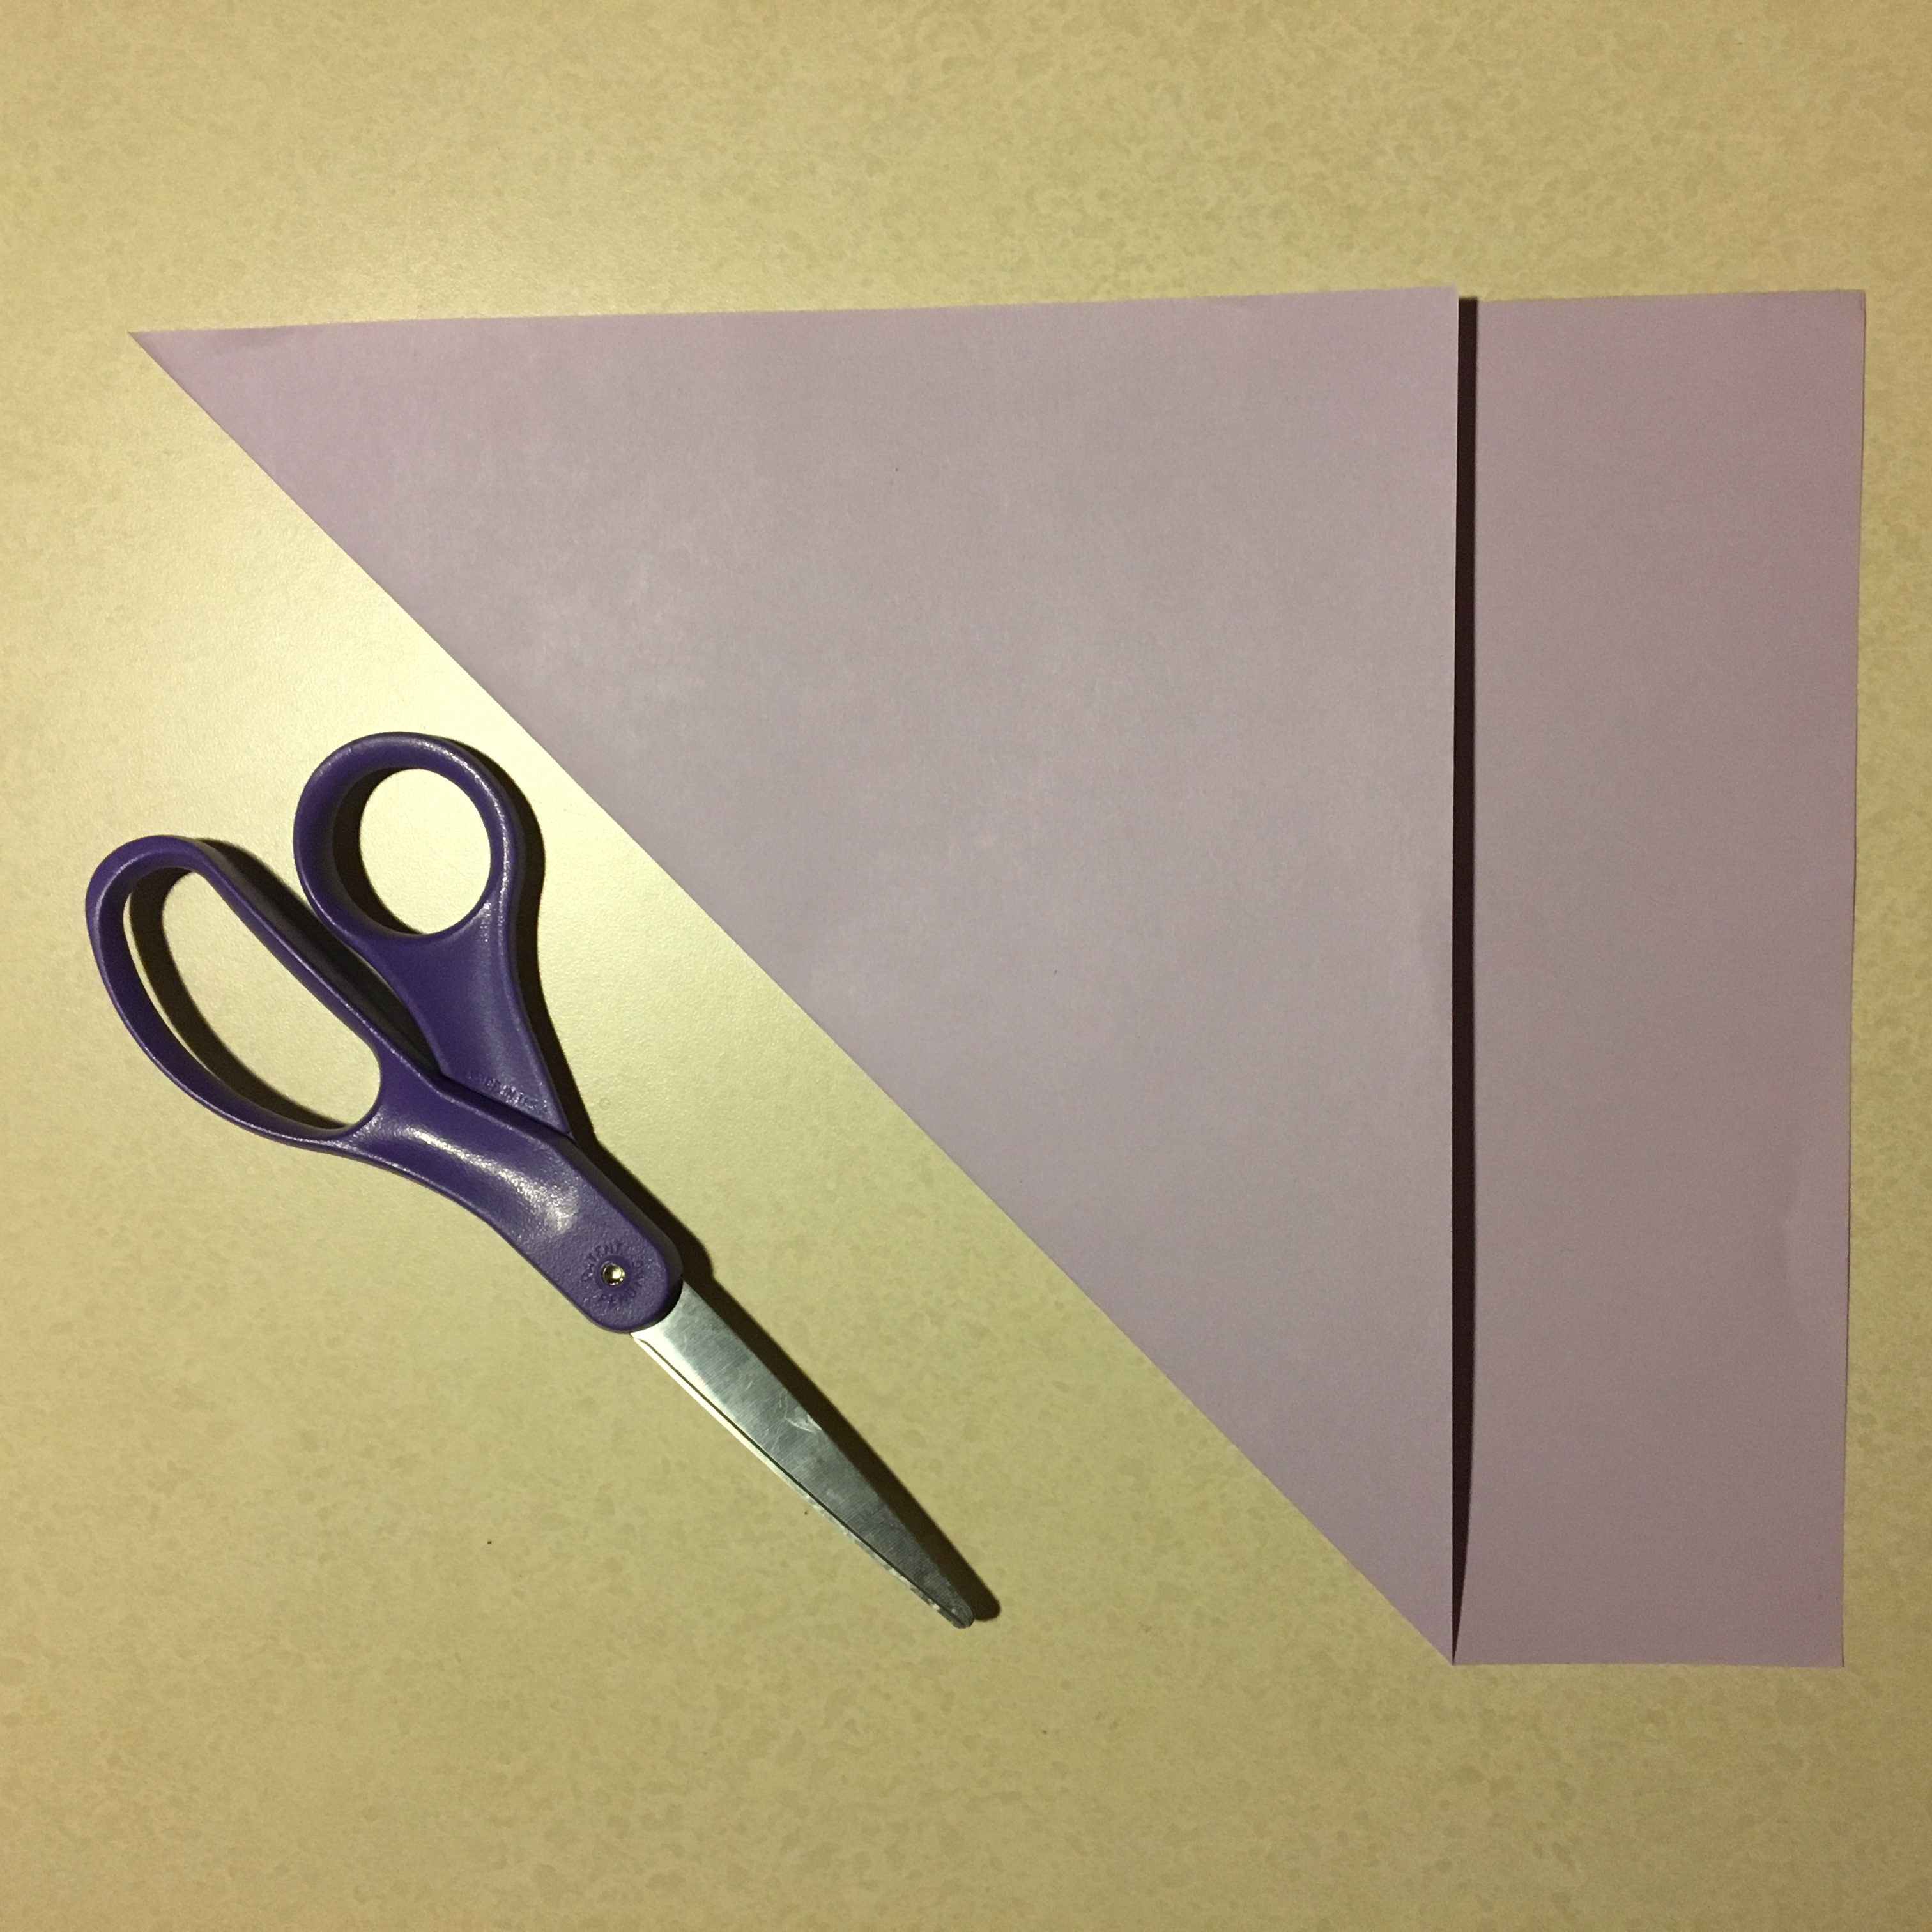 Picture of (Optional) Make a Square Piece of Paper.